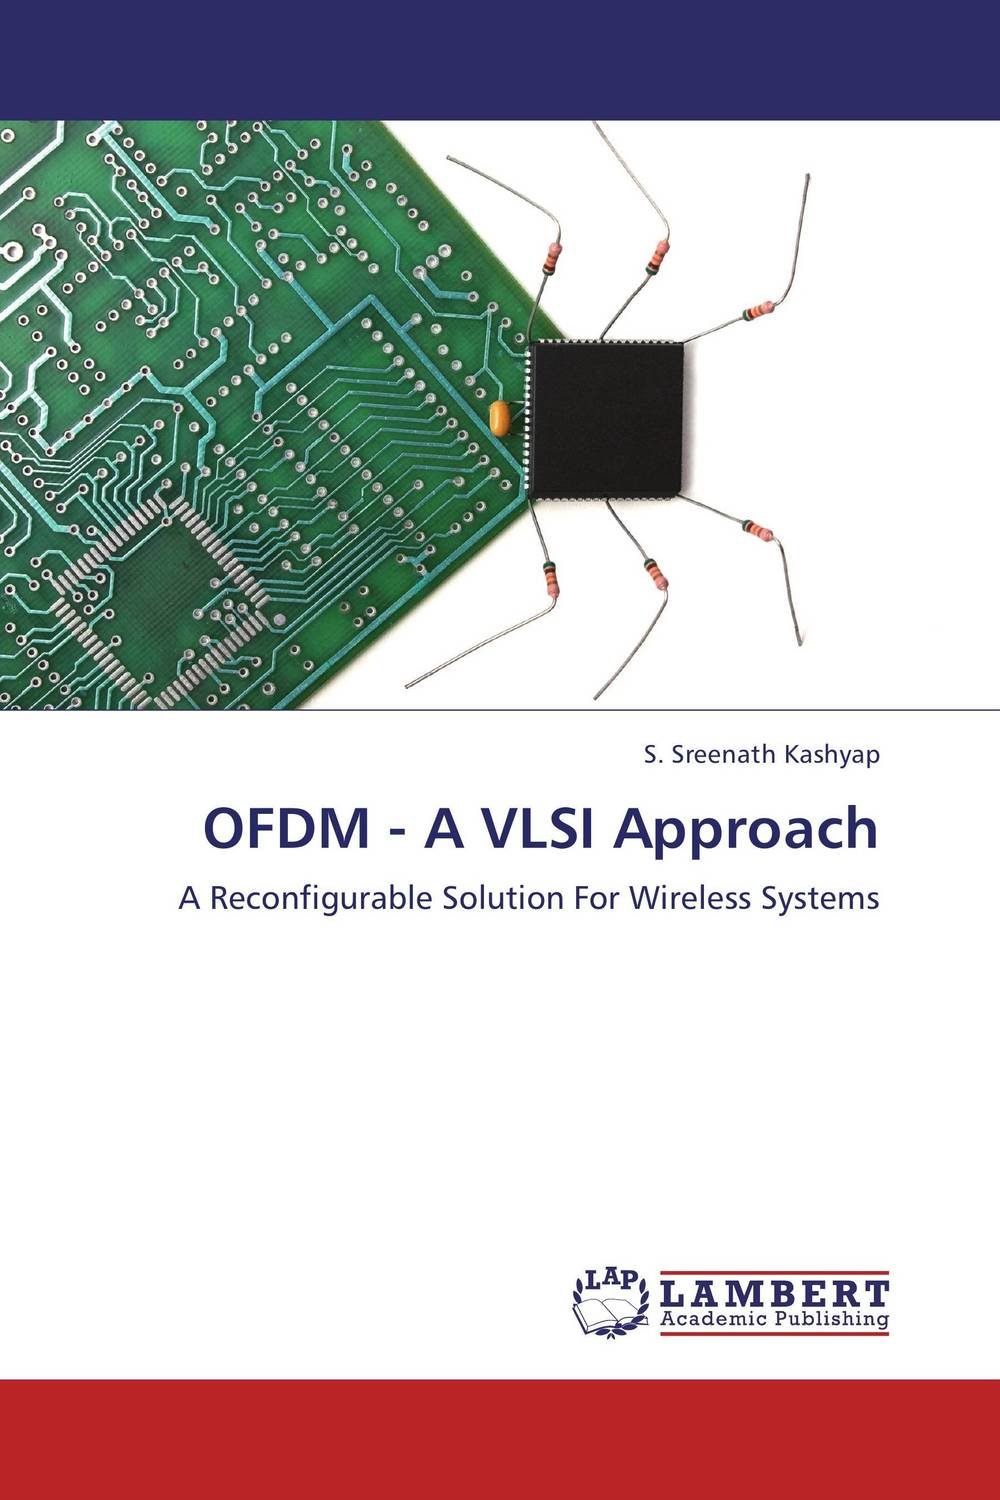 OFDM - A VLSI Approach wireless ofdm and mimo ofdm communications